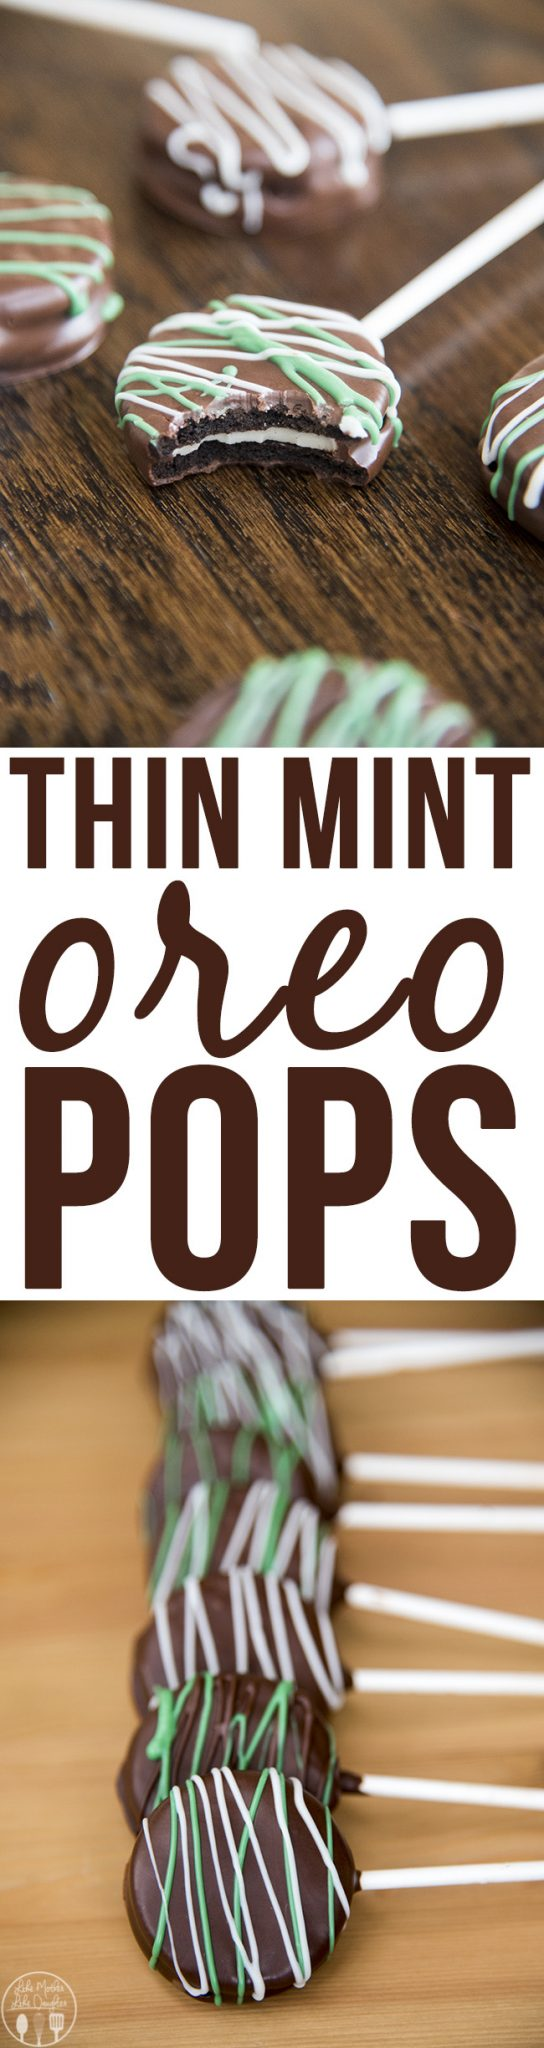 Thin Mint Oreo Pops - crunchy oreos dipped in minty chocolate and served on a stick. Great for an amazing treat everyone will love!